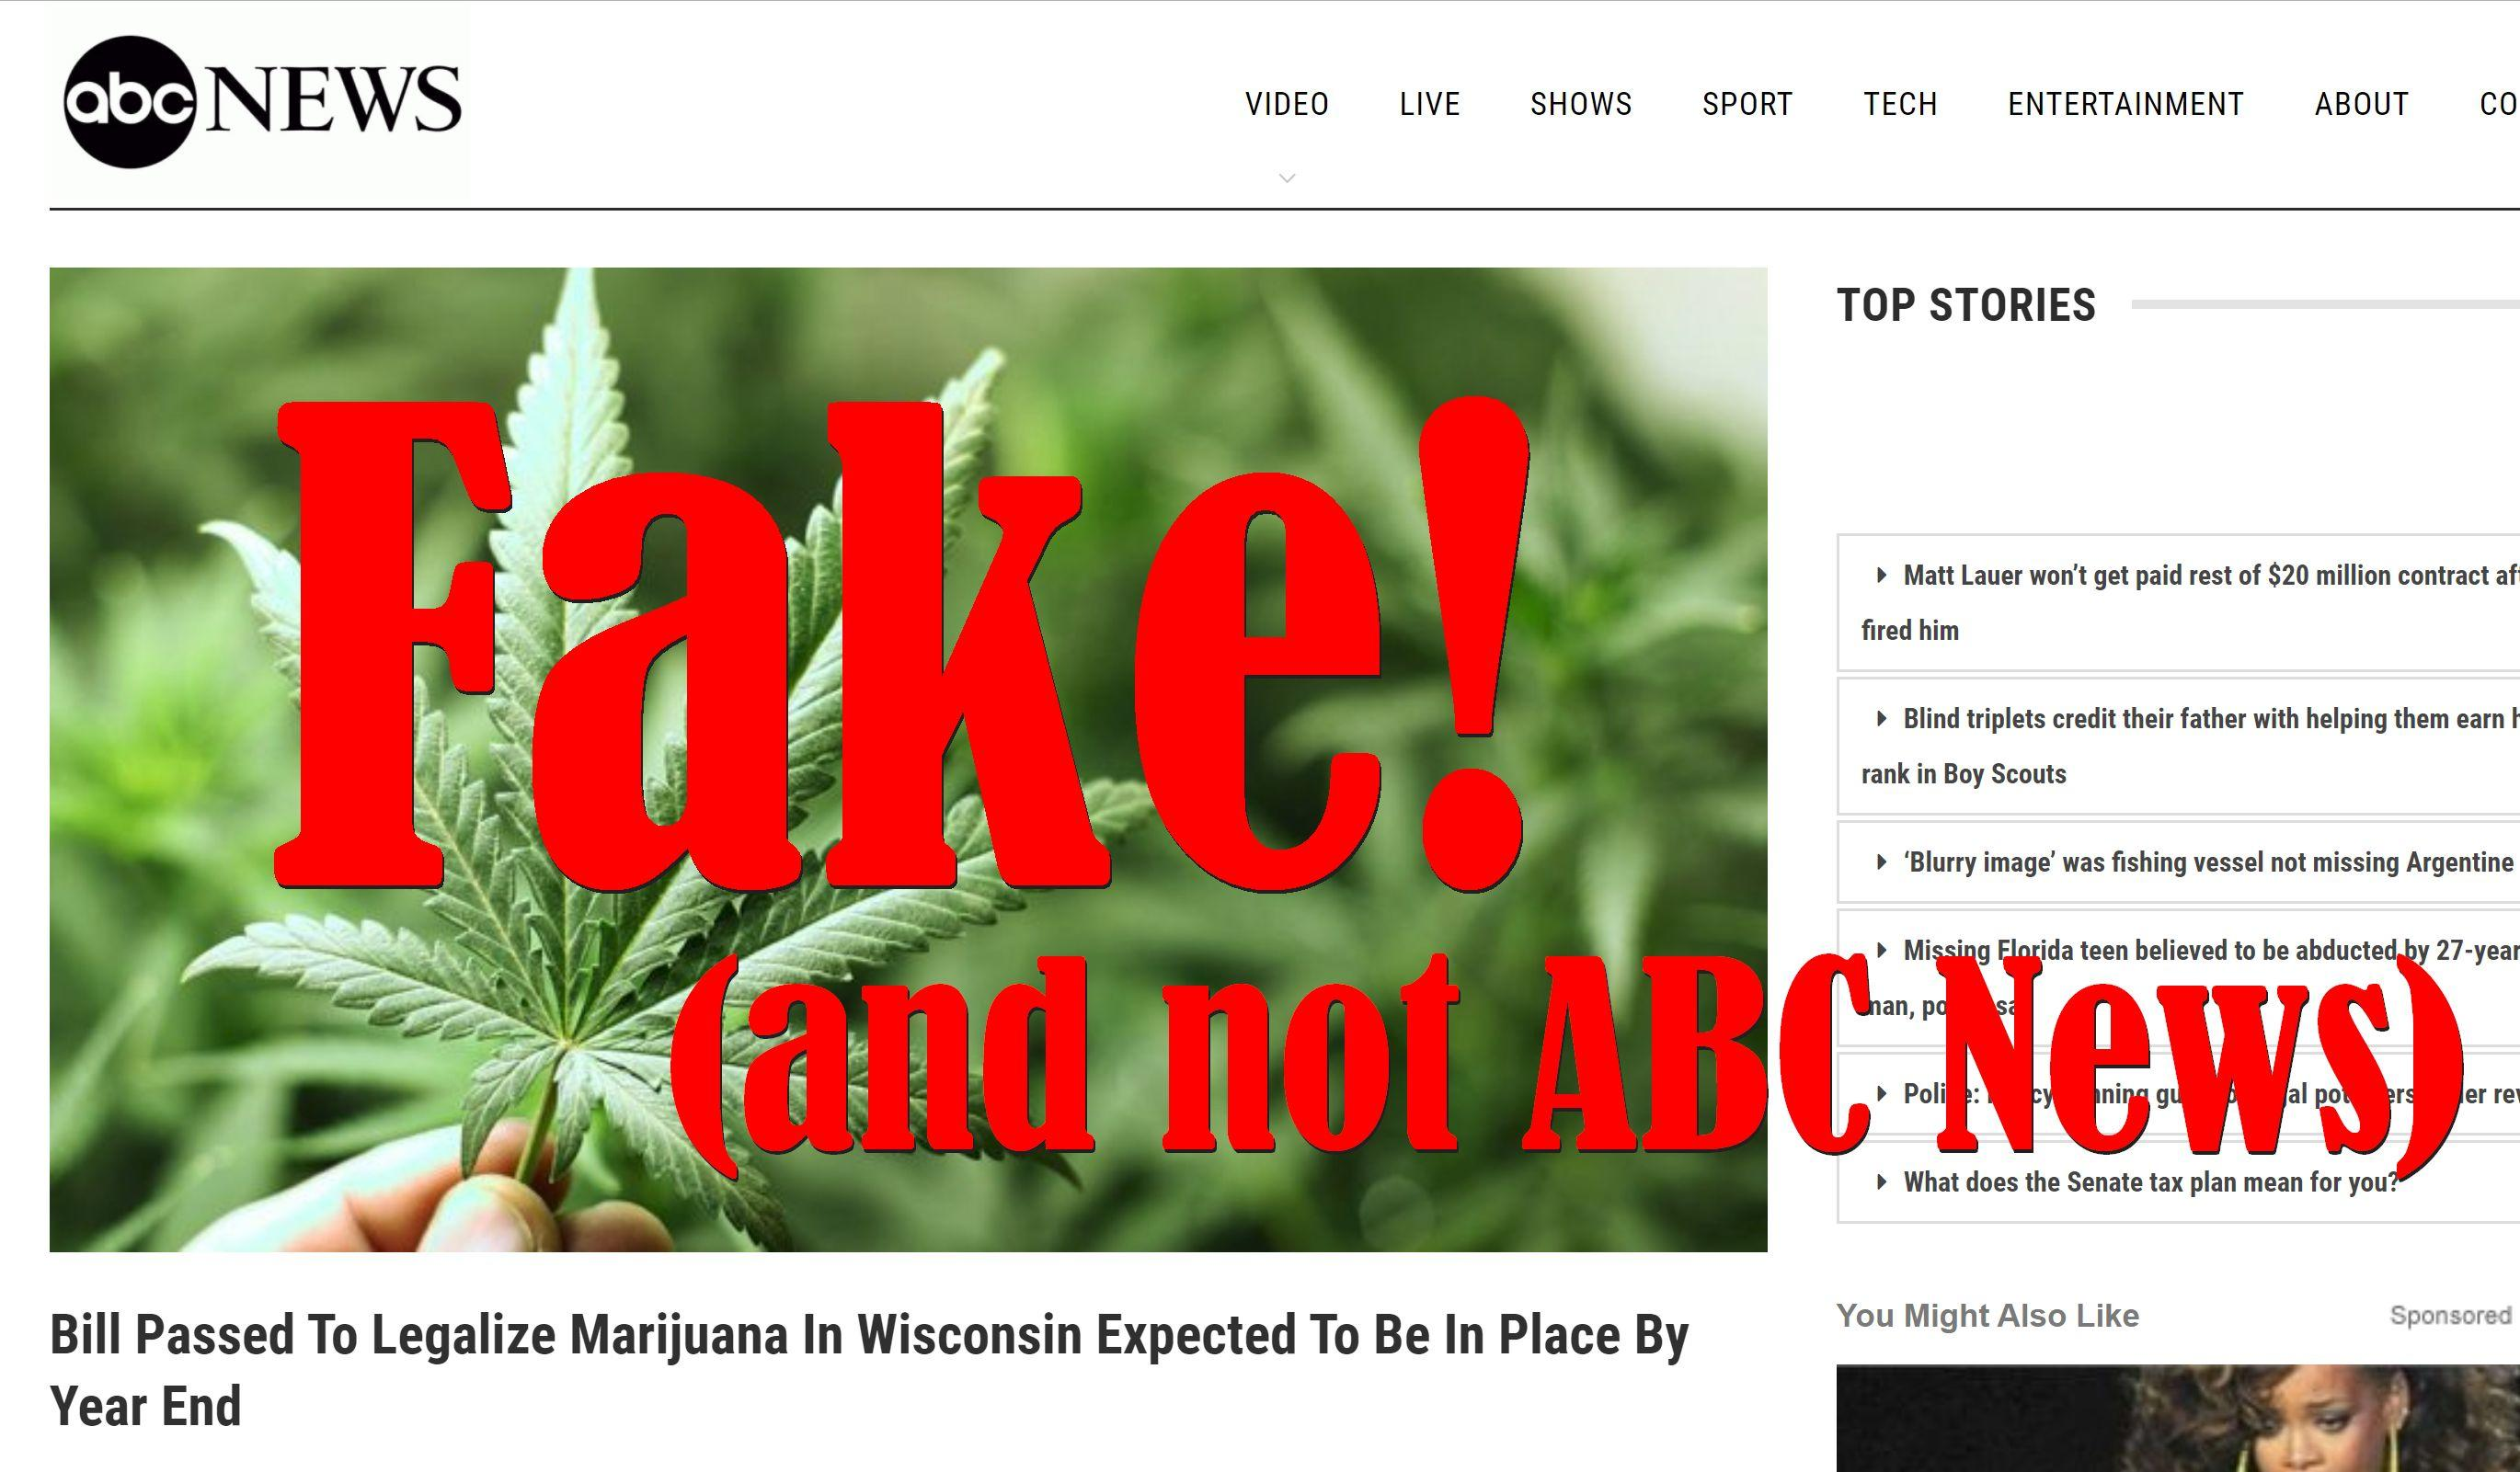 Fake News: Bill NOT Passed To Legalize Marijuana In Wisconsin, NOT Expected To Be In Place By Year End